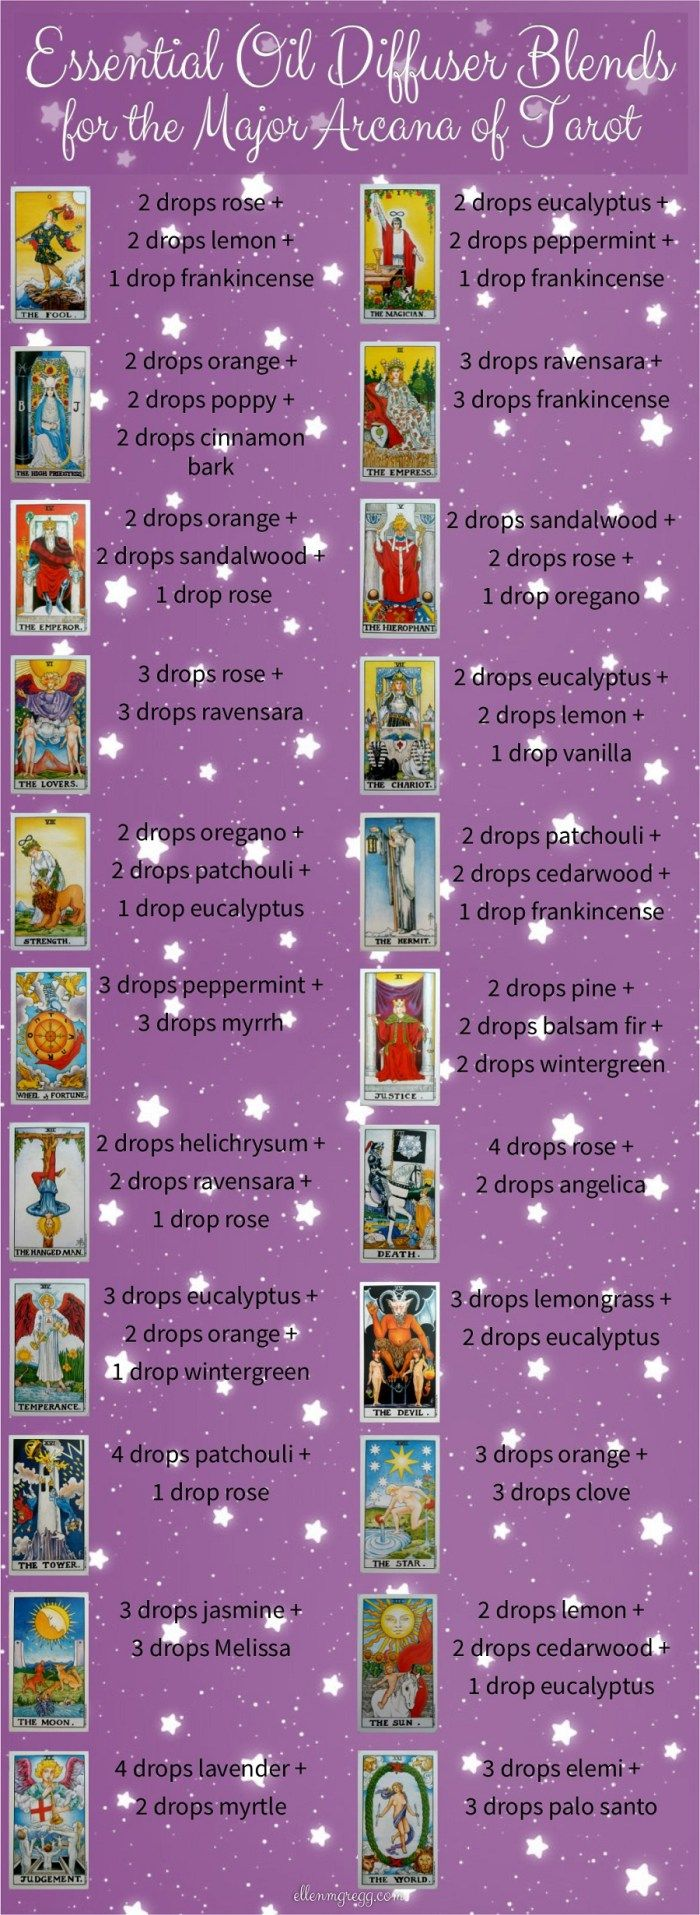 Essential Oil Diffuser Blends for the Major Arcana of Tarot ~ 22 essential-oil diffuser recipes to inspire you and your practice.